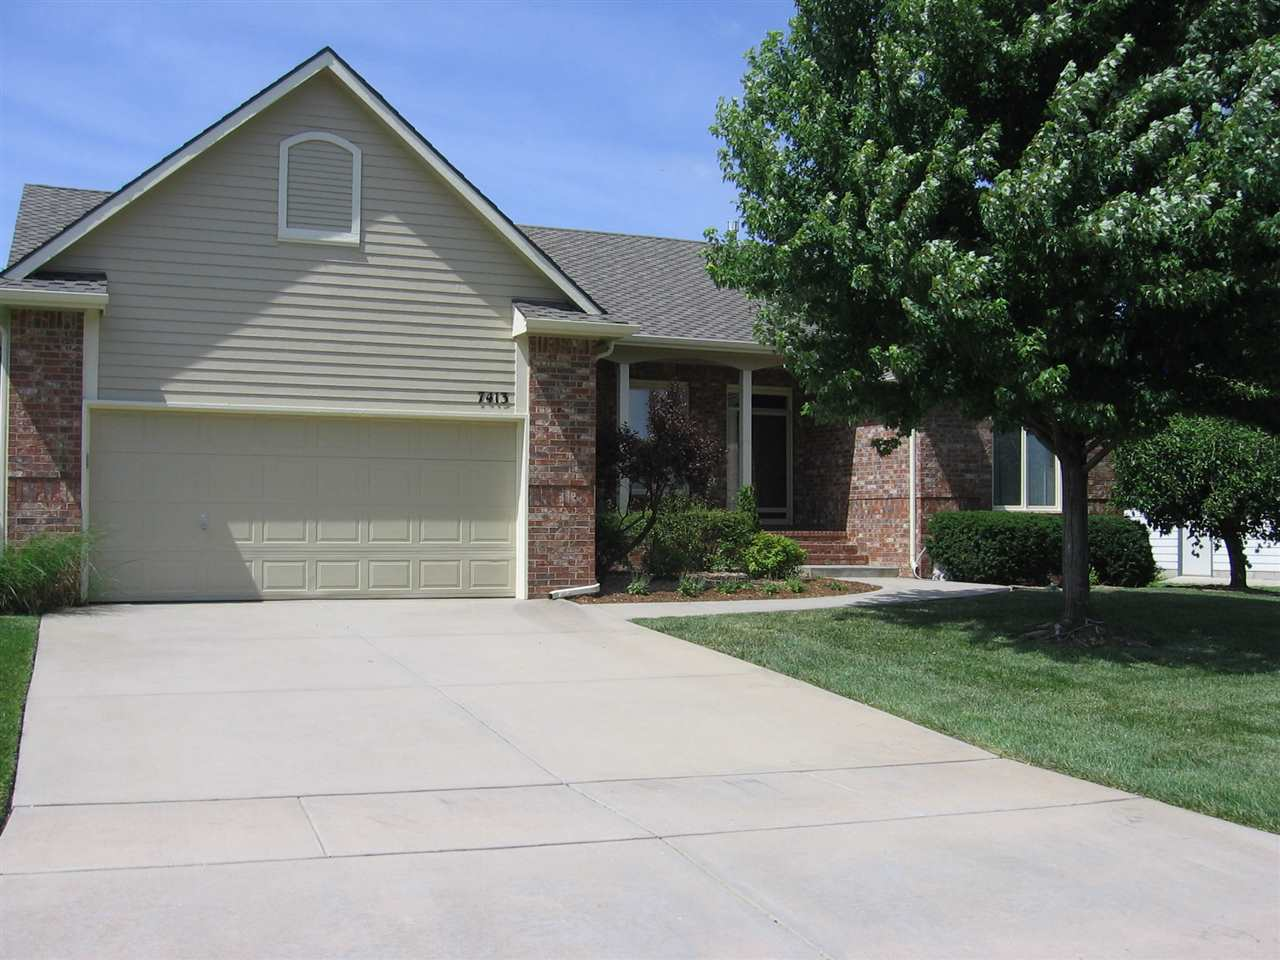 7413 E Cedaridge Cir., Wichita, KS 67226